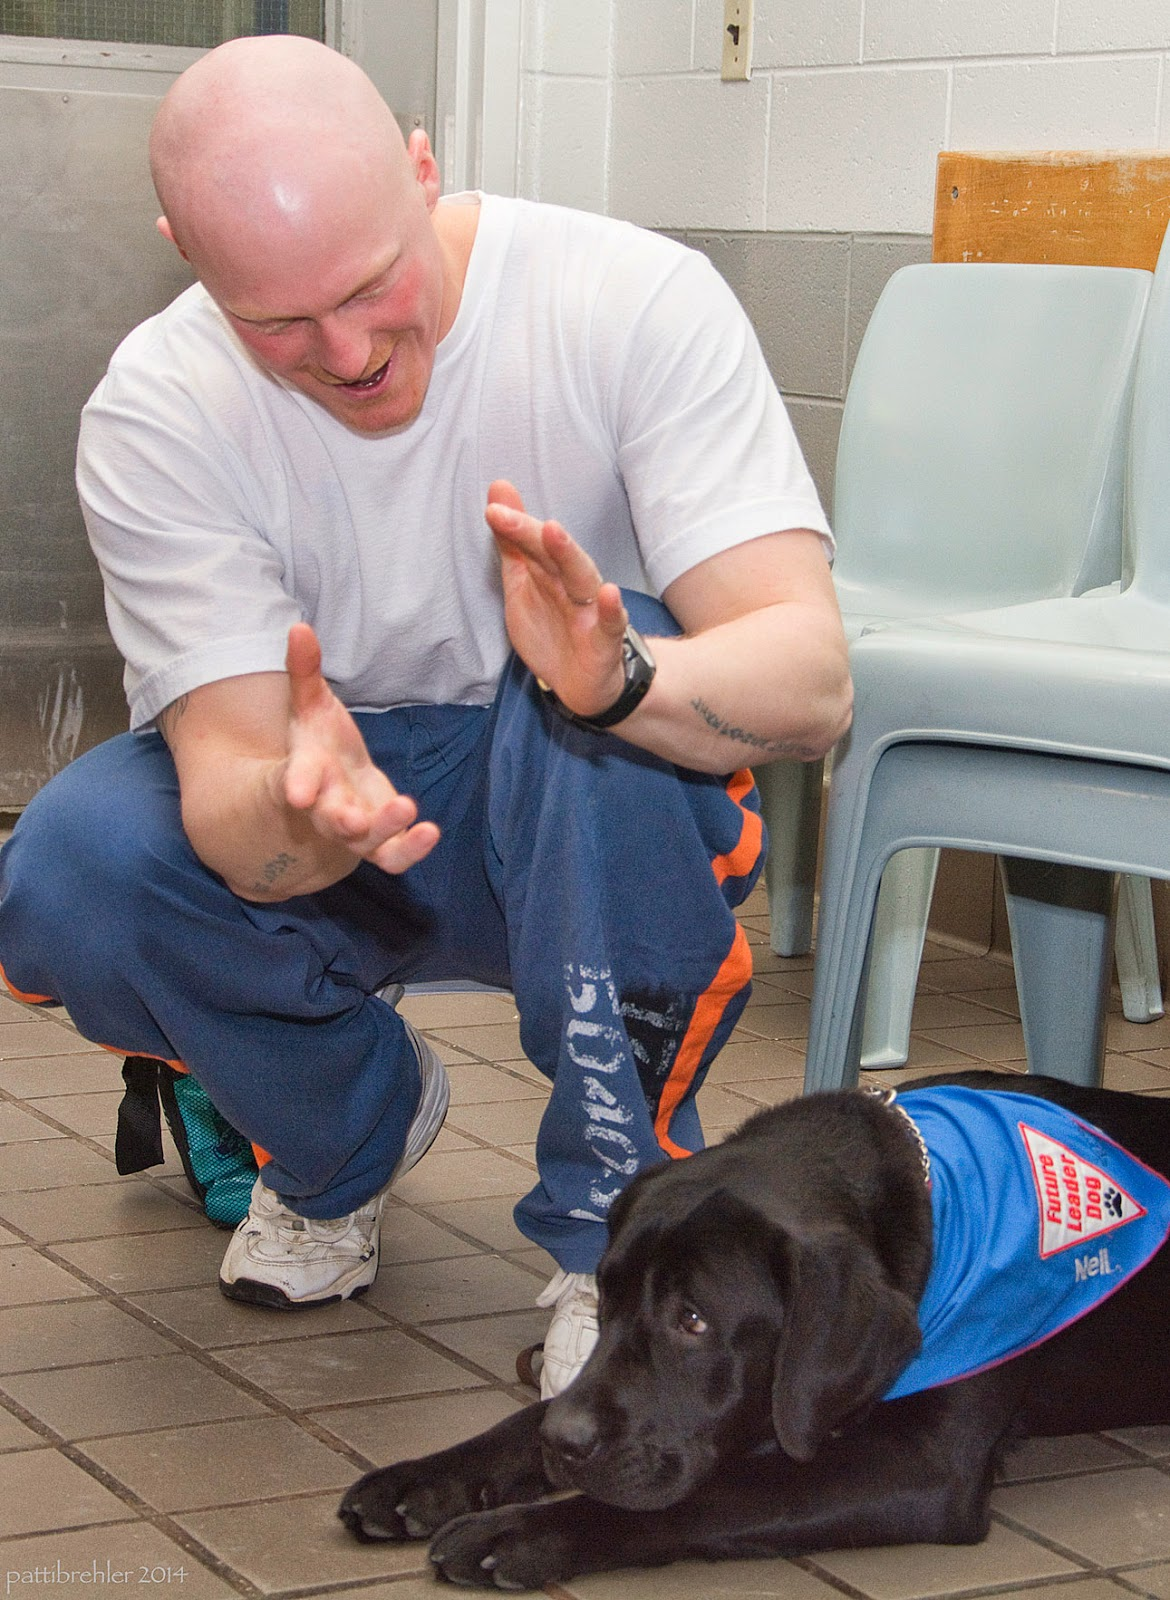 A bald young man wearing a white t-shirt and prison blue pants is sqatting next to a black lab that is lying down under a chair facing out. The man is clapping his hands and looking at the dog. The lab has her chin on her front legs as if she is embarrassed! She is wearing a blue Future Leader Dog bandana.